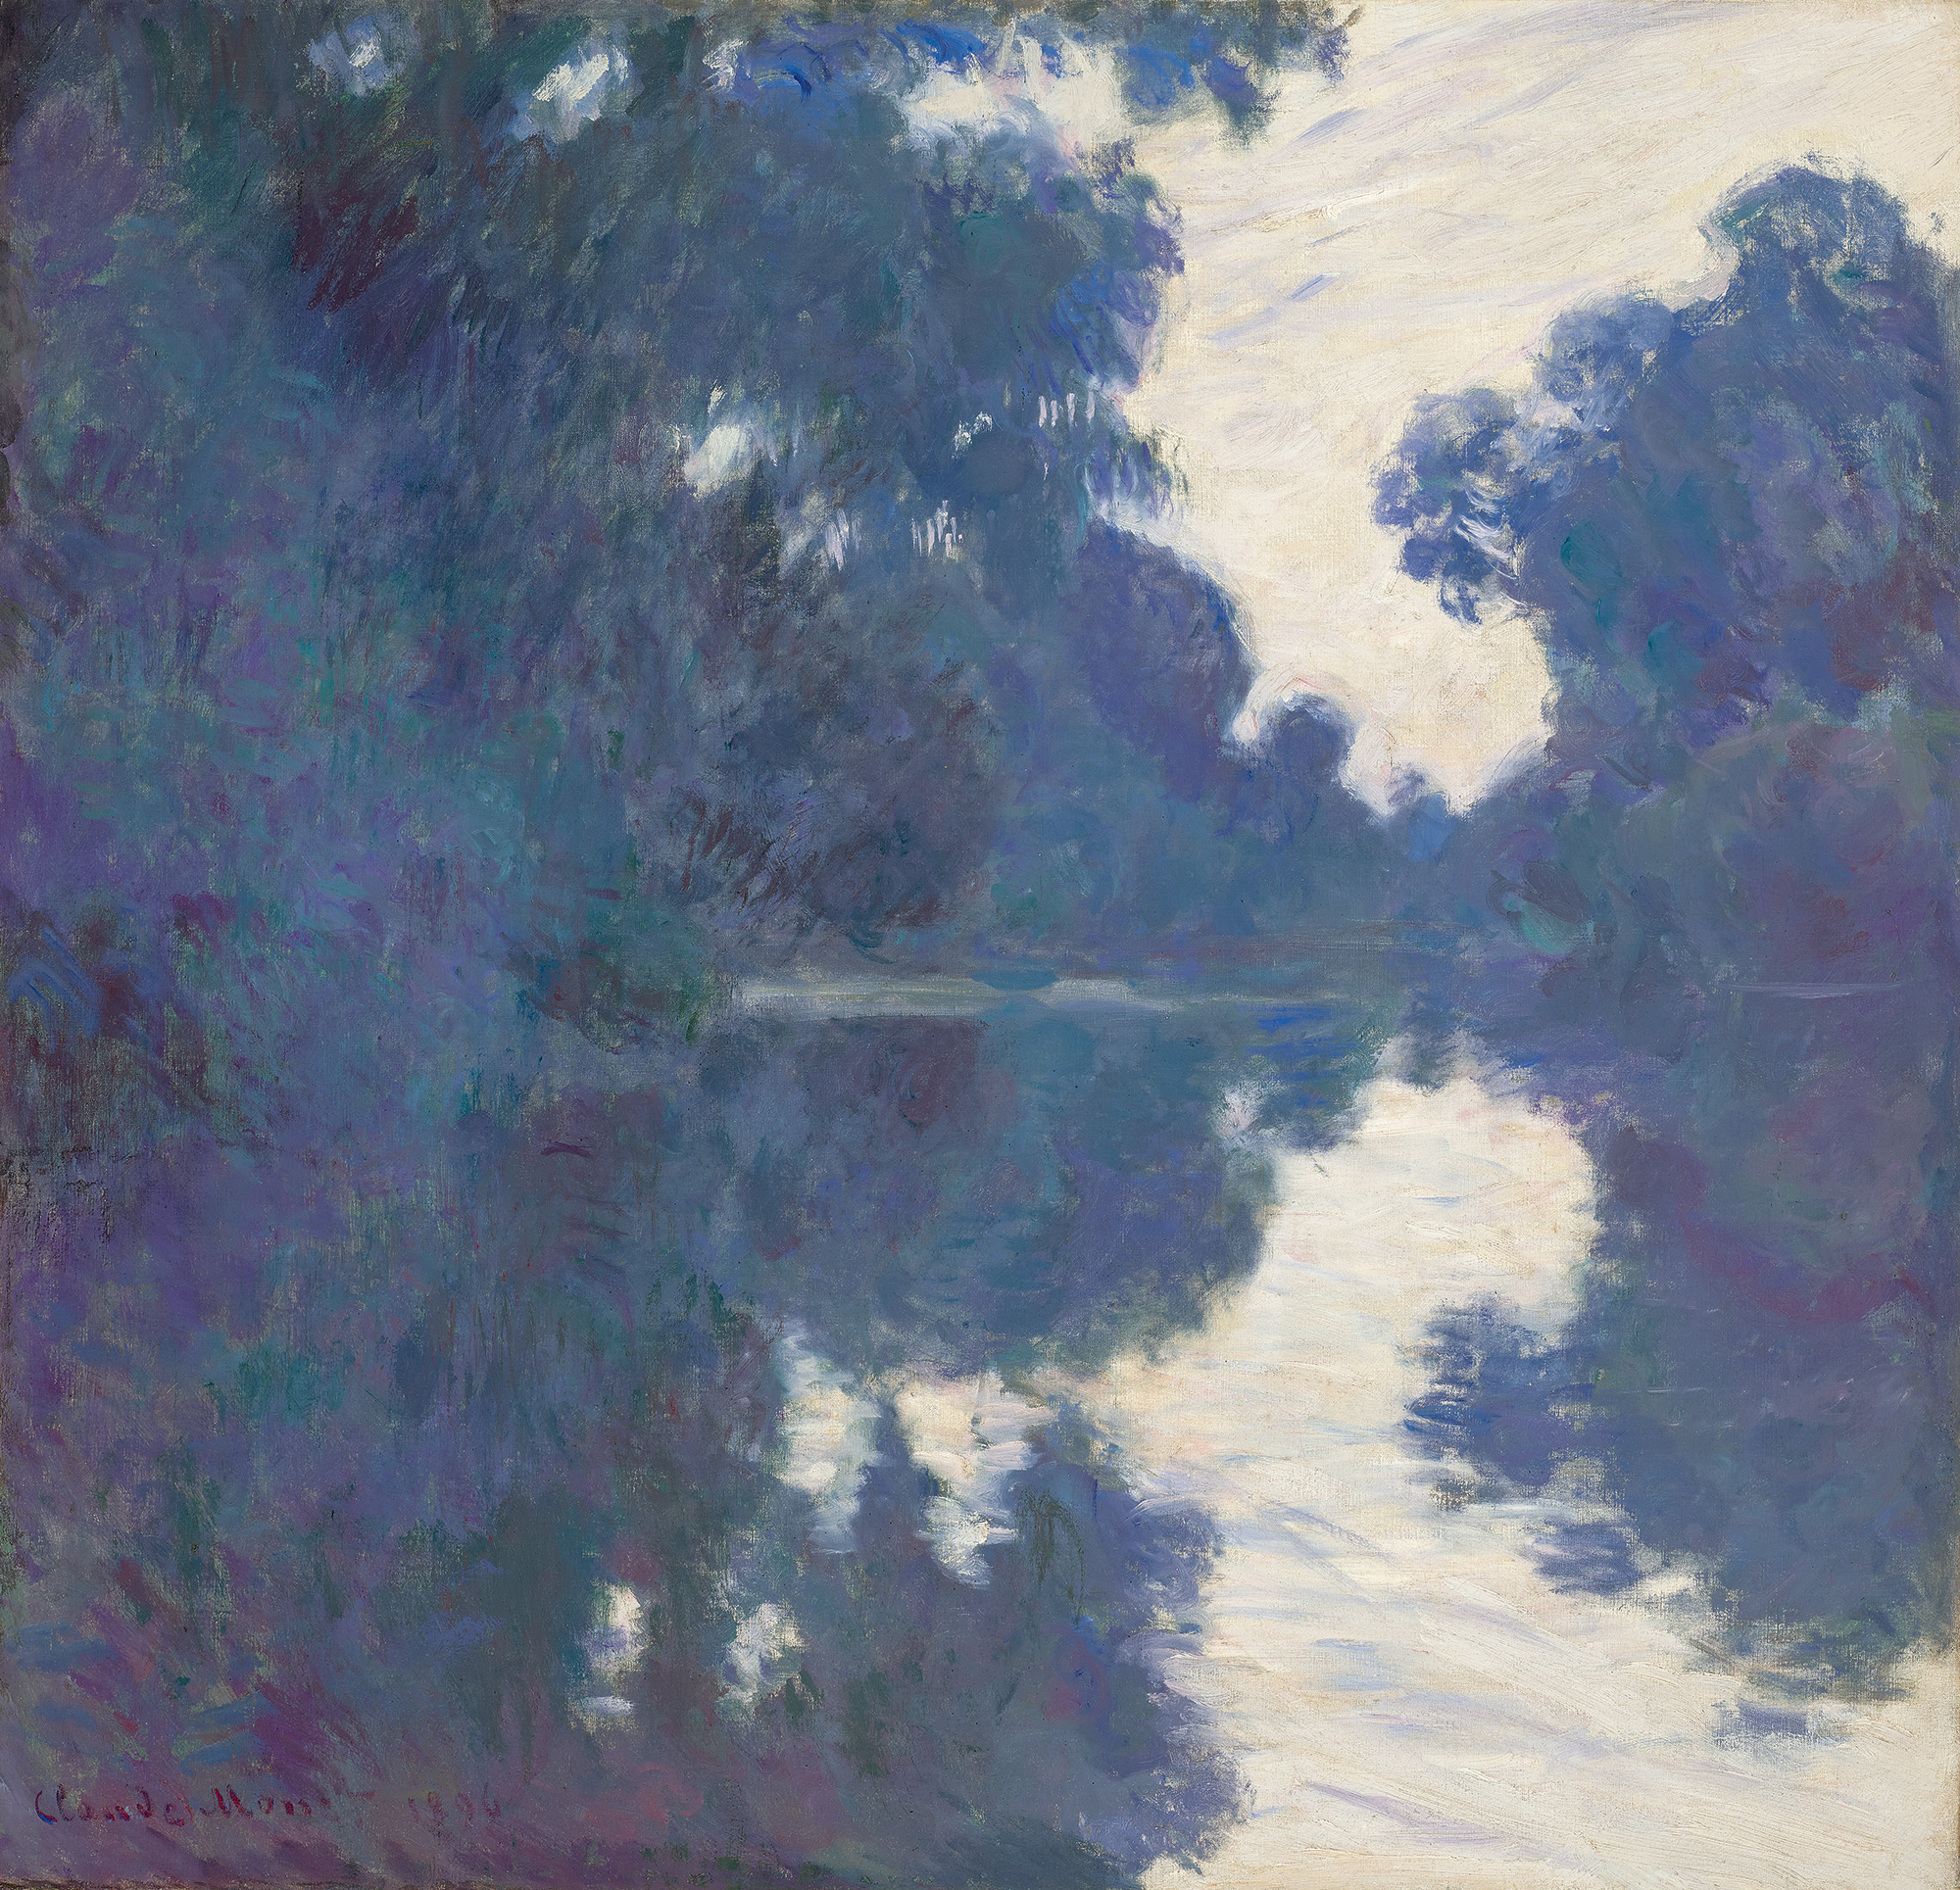 Monet's Lasting Impression on Modern & Contemporary Art